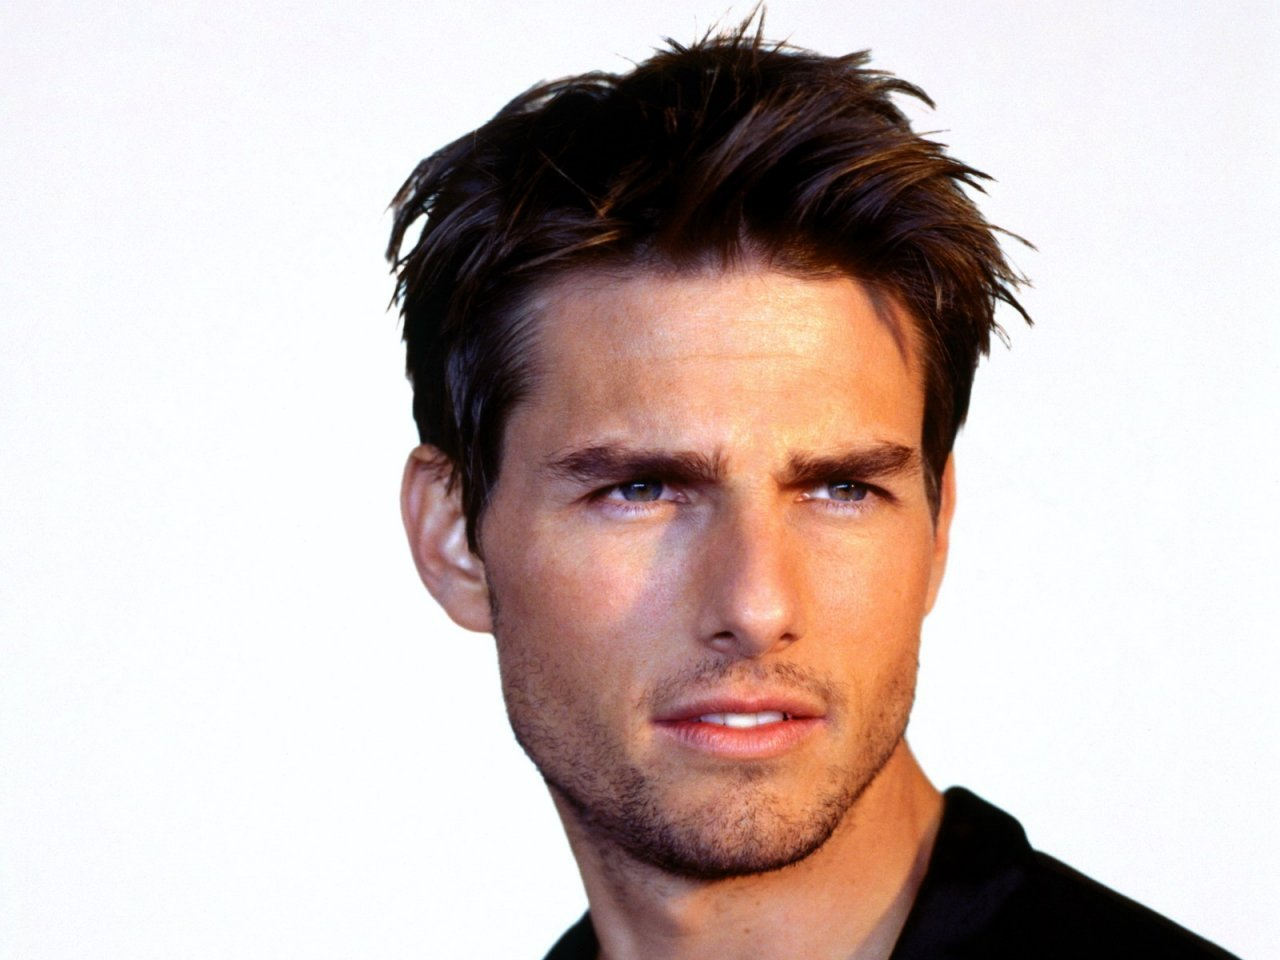 Tom Cruise Wallpaper Theme With Backgrounds 1280x960 1280x960